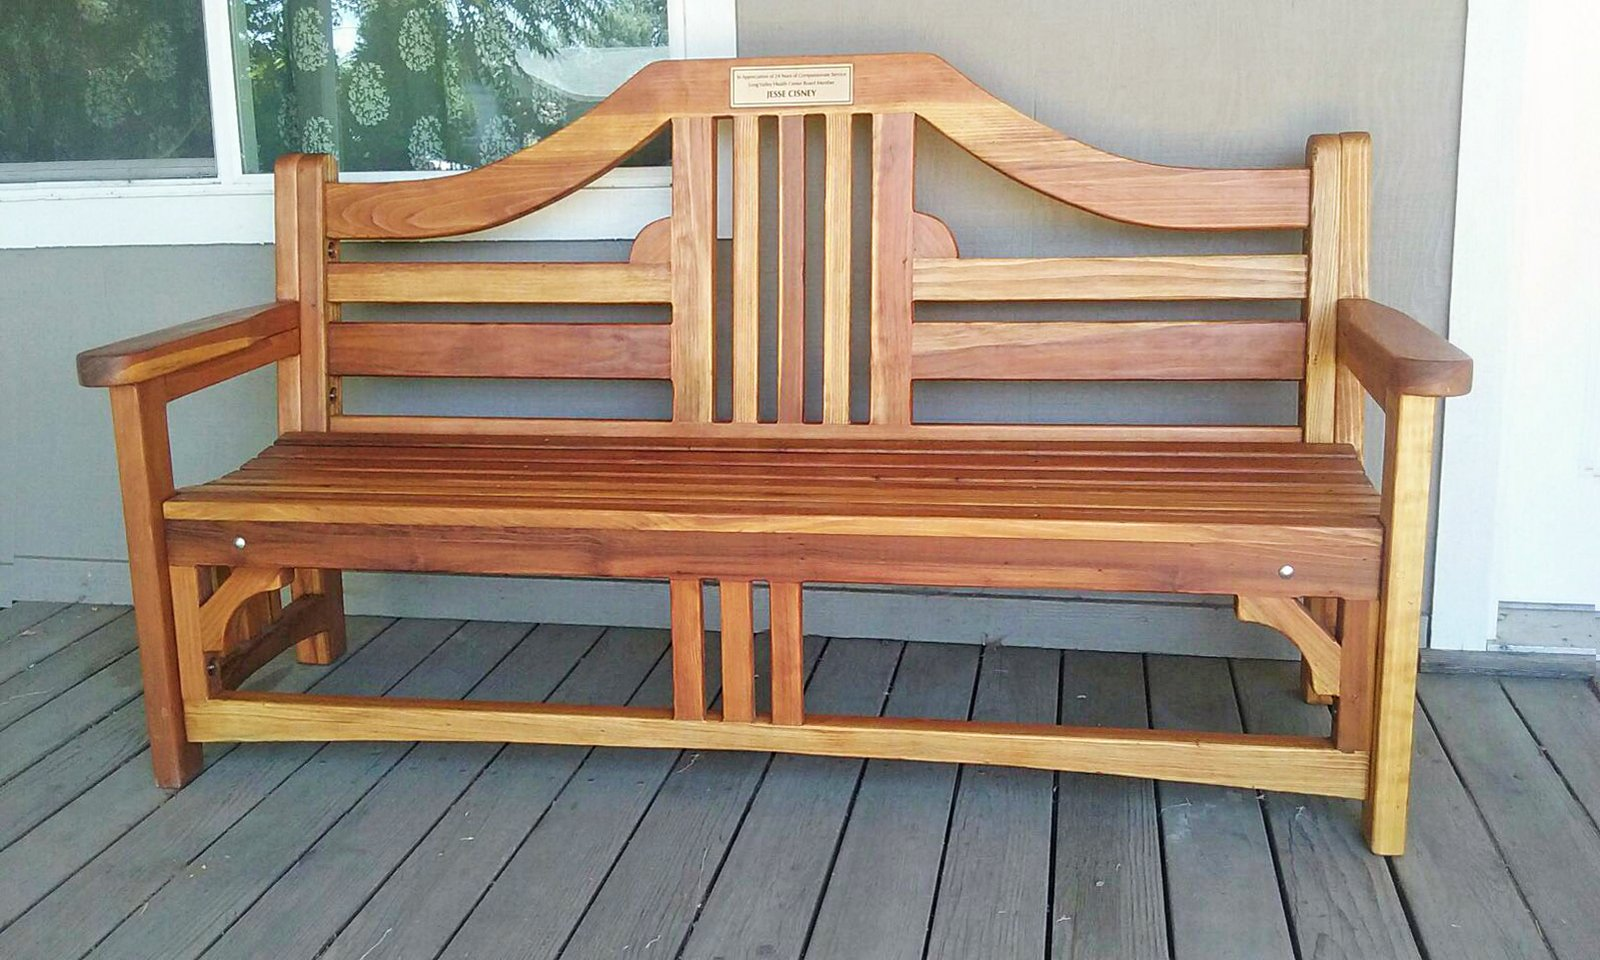 Alan S Bench Options 6 Ft Redwood No Cushion Engraving